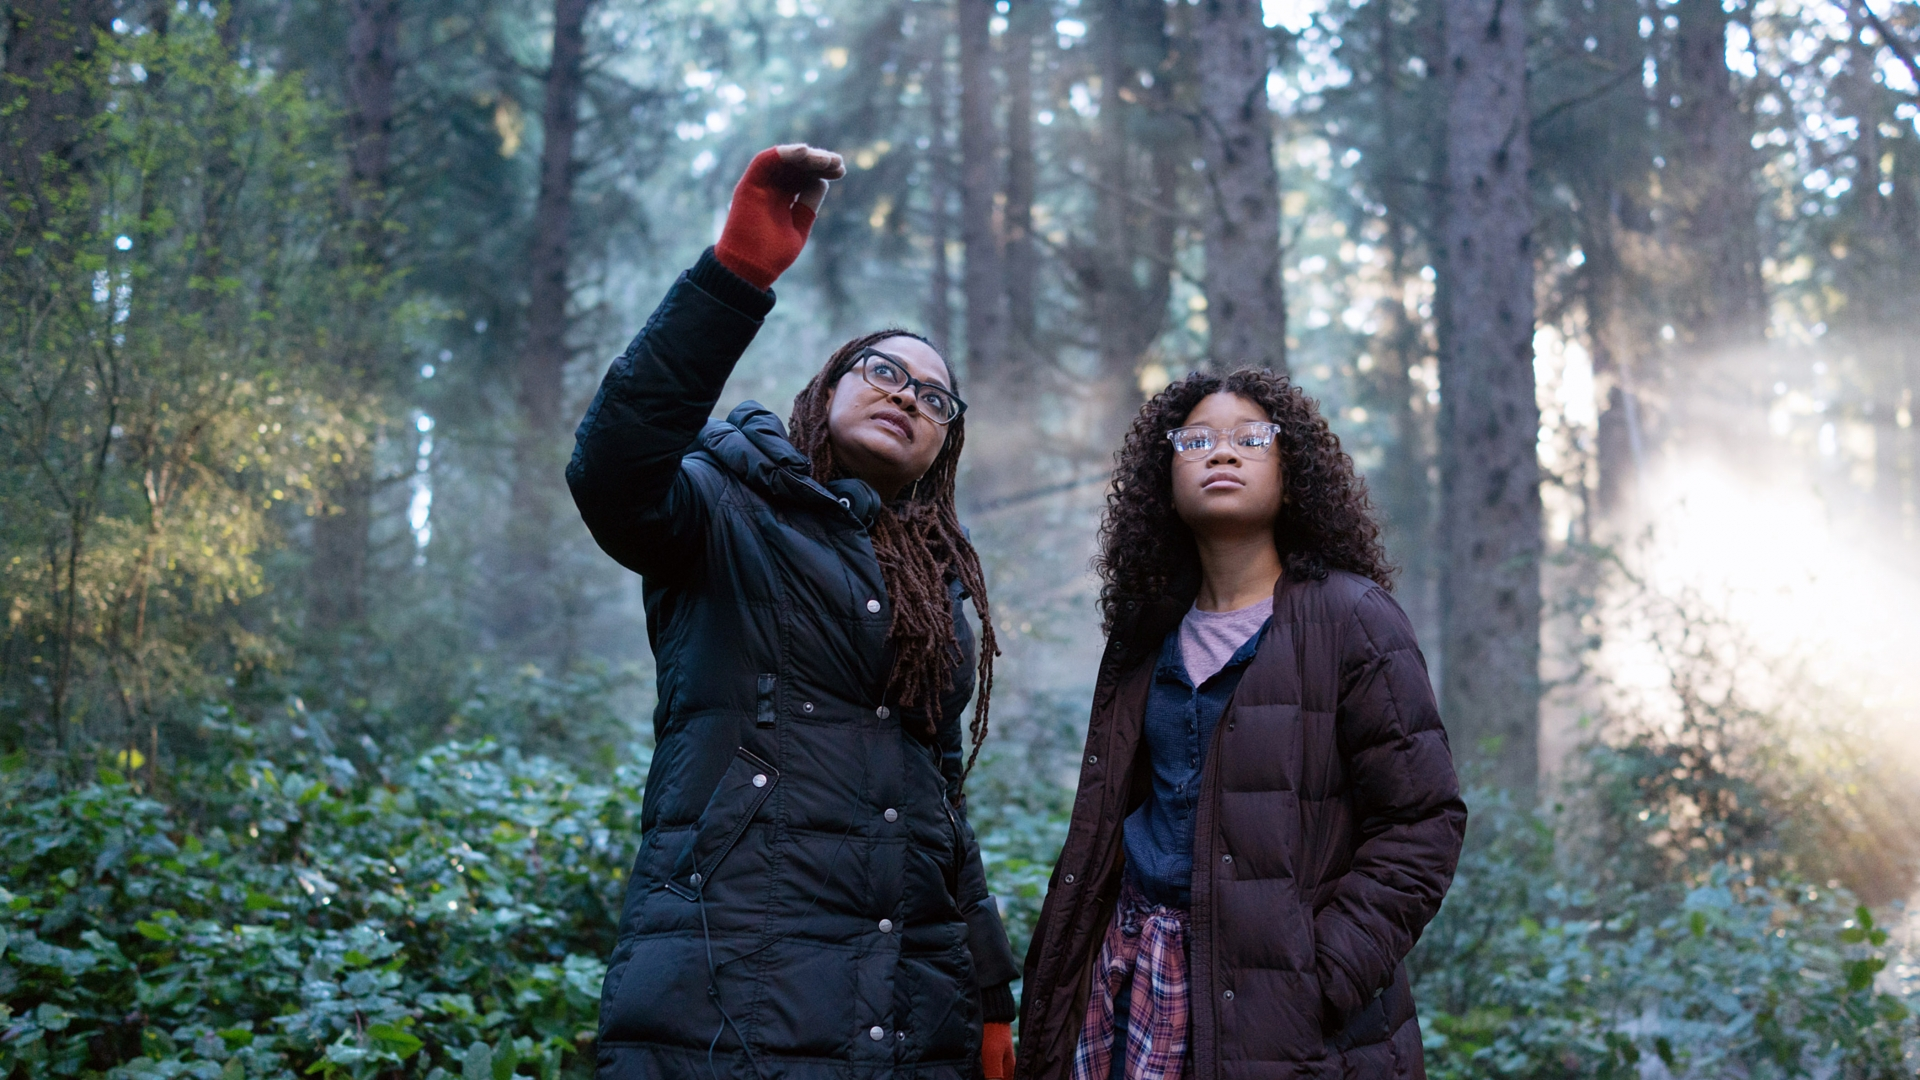 Director Ava DuVernay on set with Storm Reid who plays Meg. (Credit: Atsushi Nishijima/Walt Disney Studios Motion Pictures/Everett)